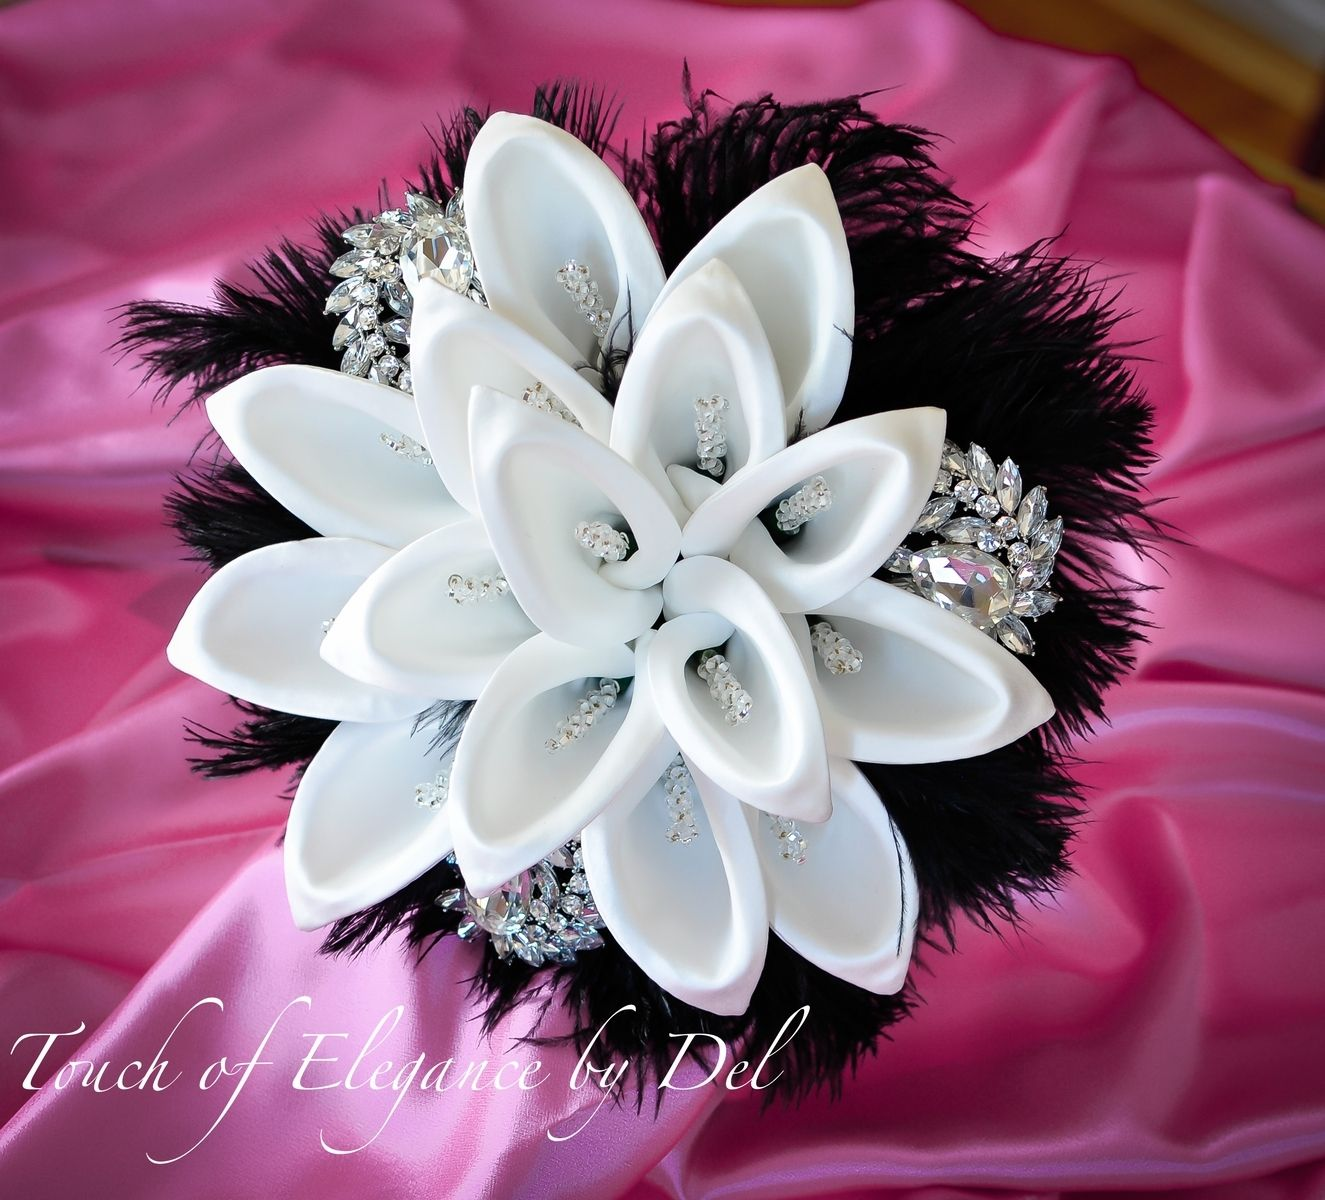 Custom 10 Diamonds In The Sky Bridal Brooch Bouquet With Calla